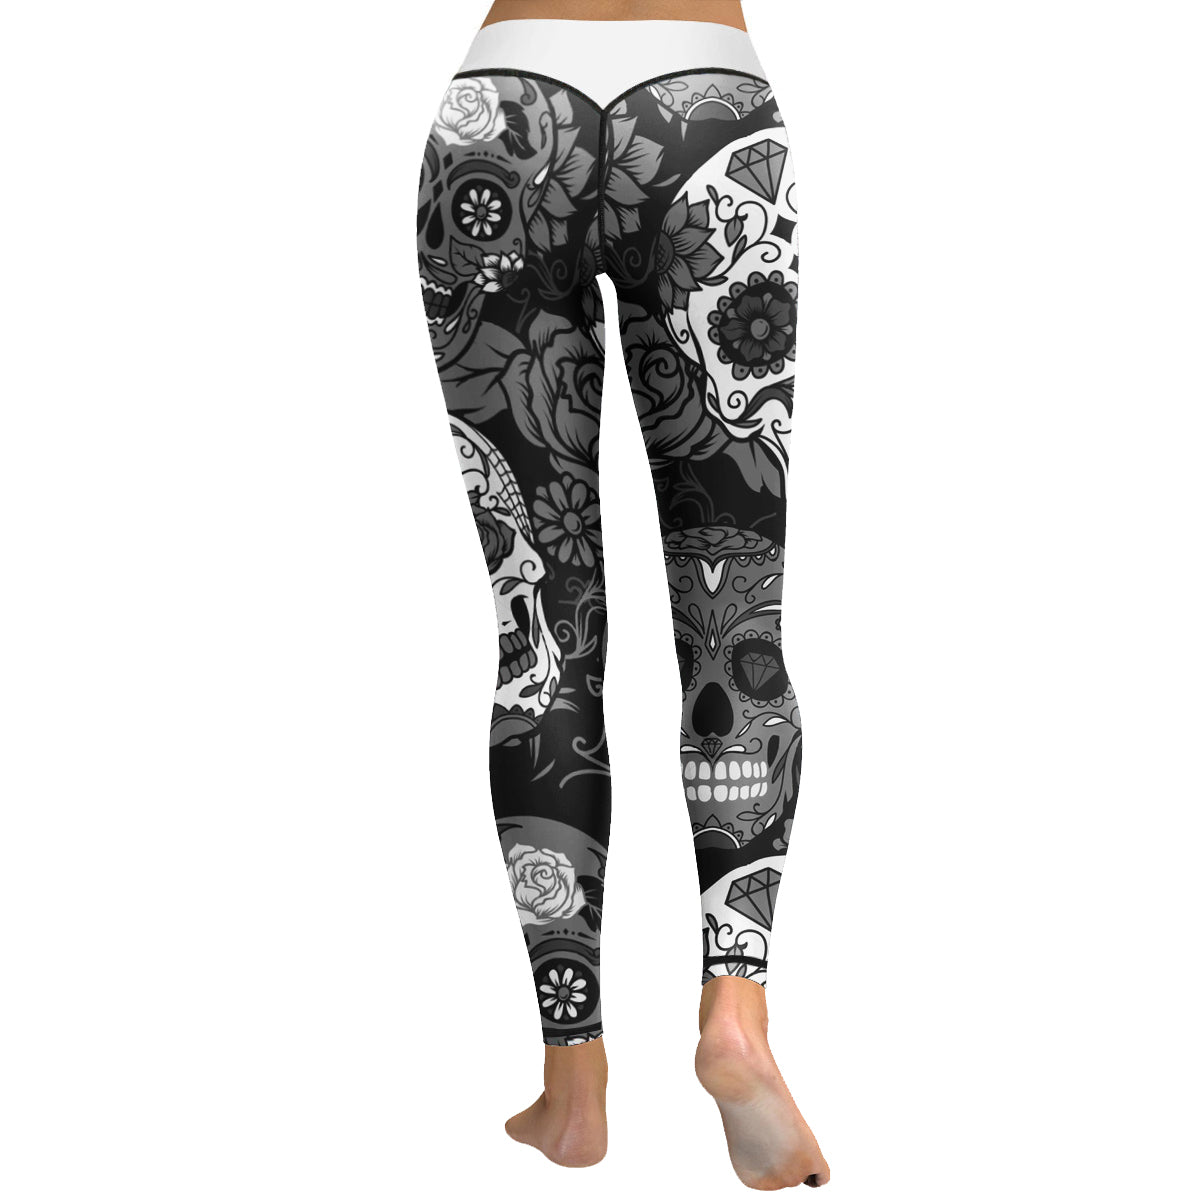 Skull Leggings & Yoga Pants High Quality Style 6